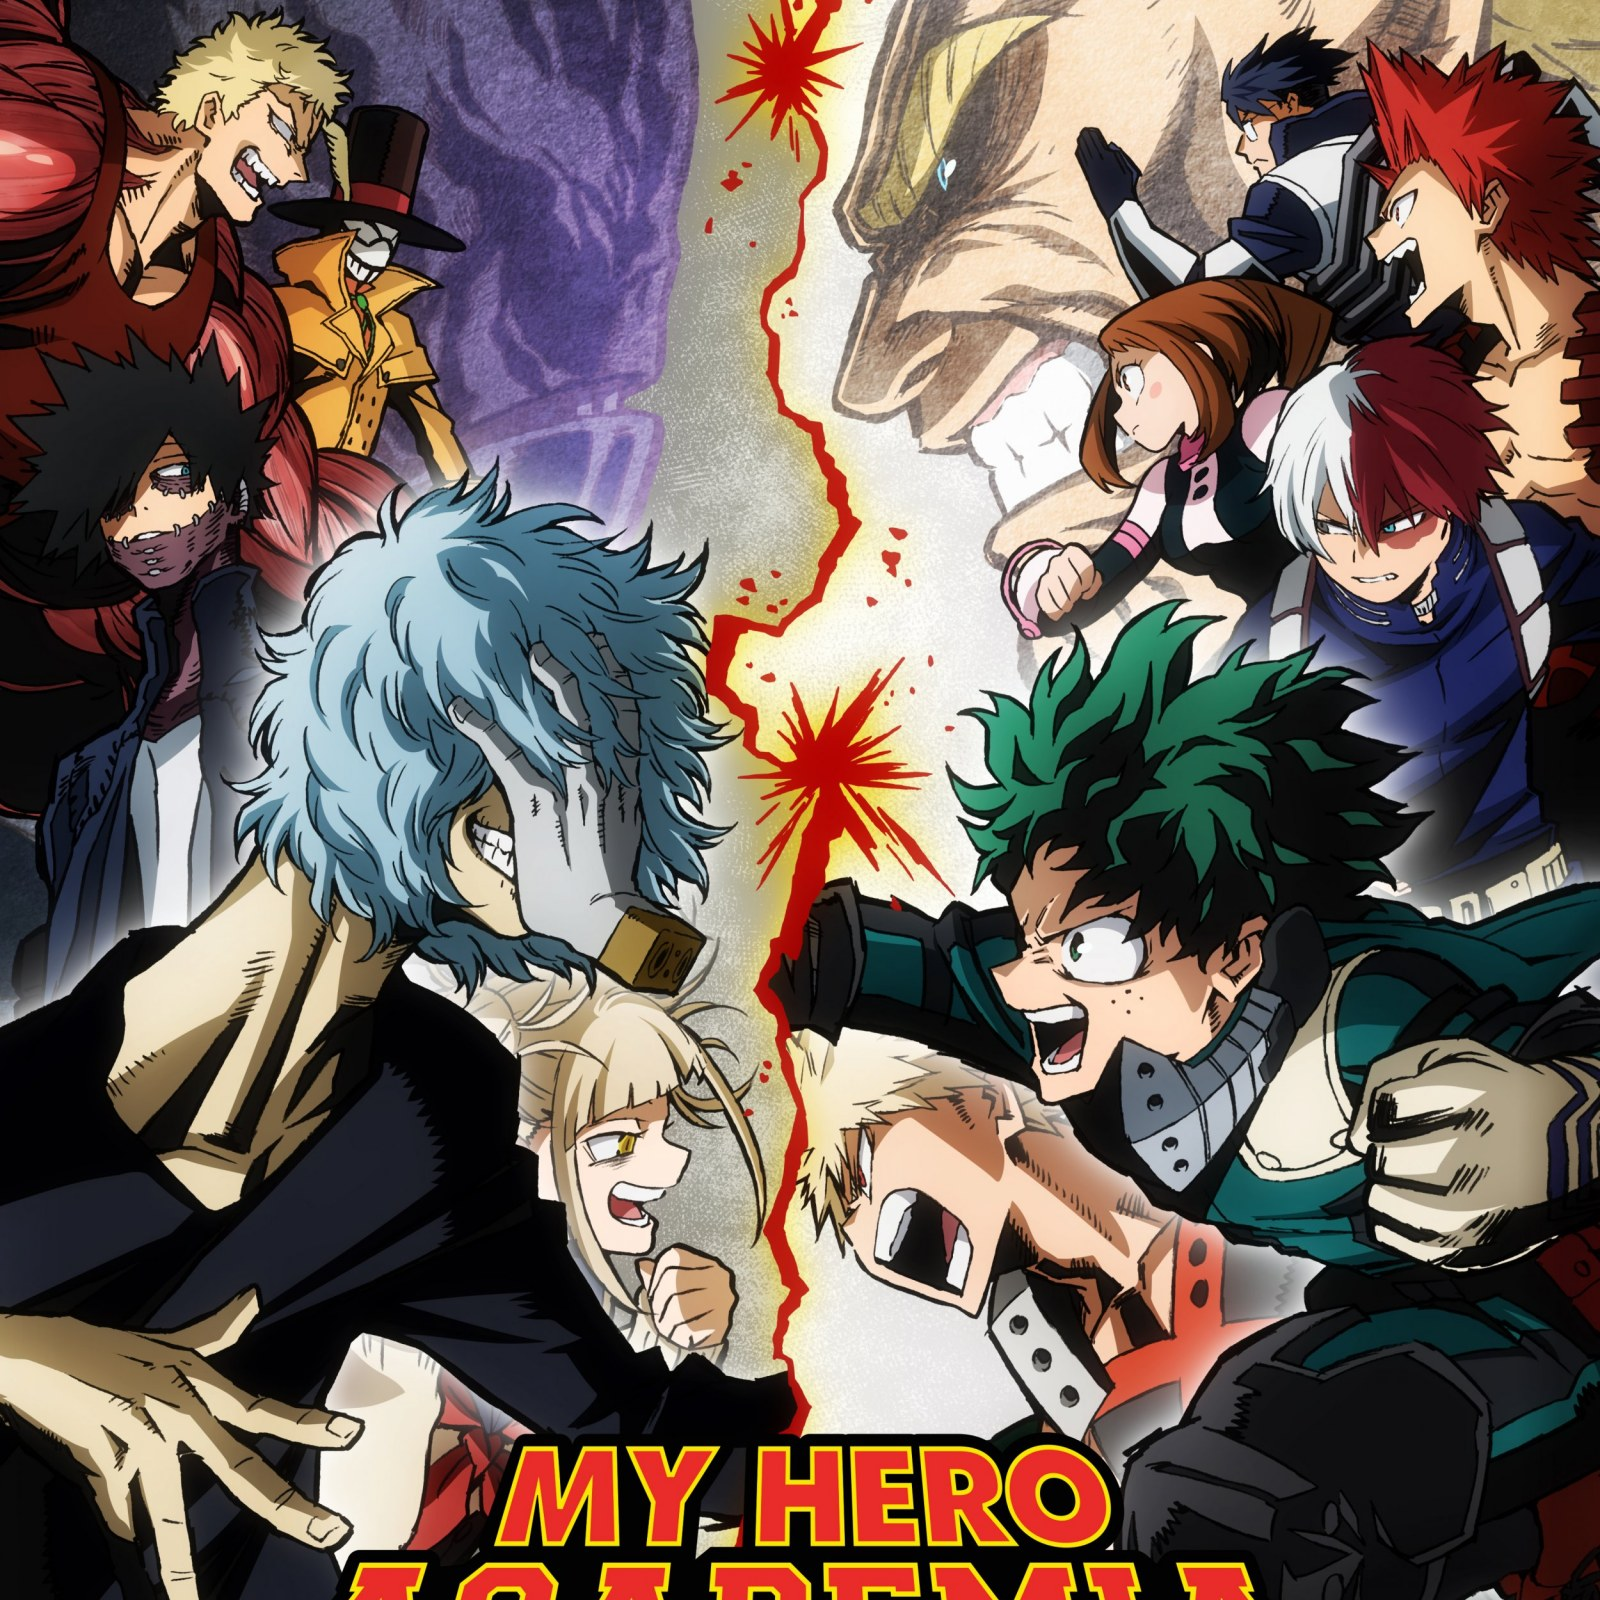 How to Watch 'My Hero Academia' Season 3 Online: When